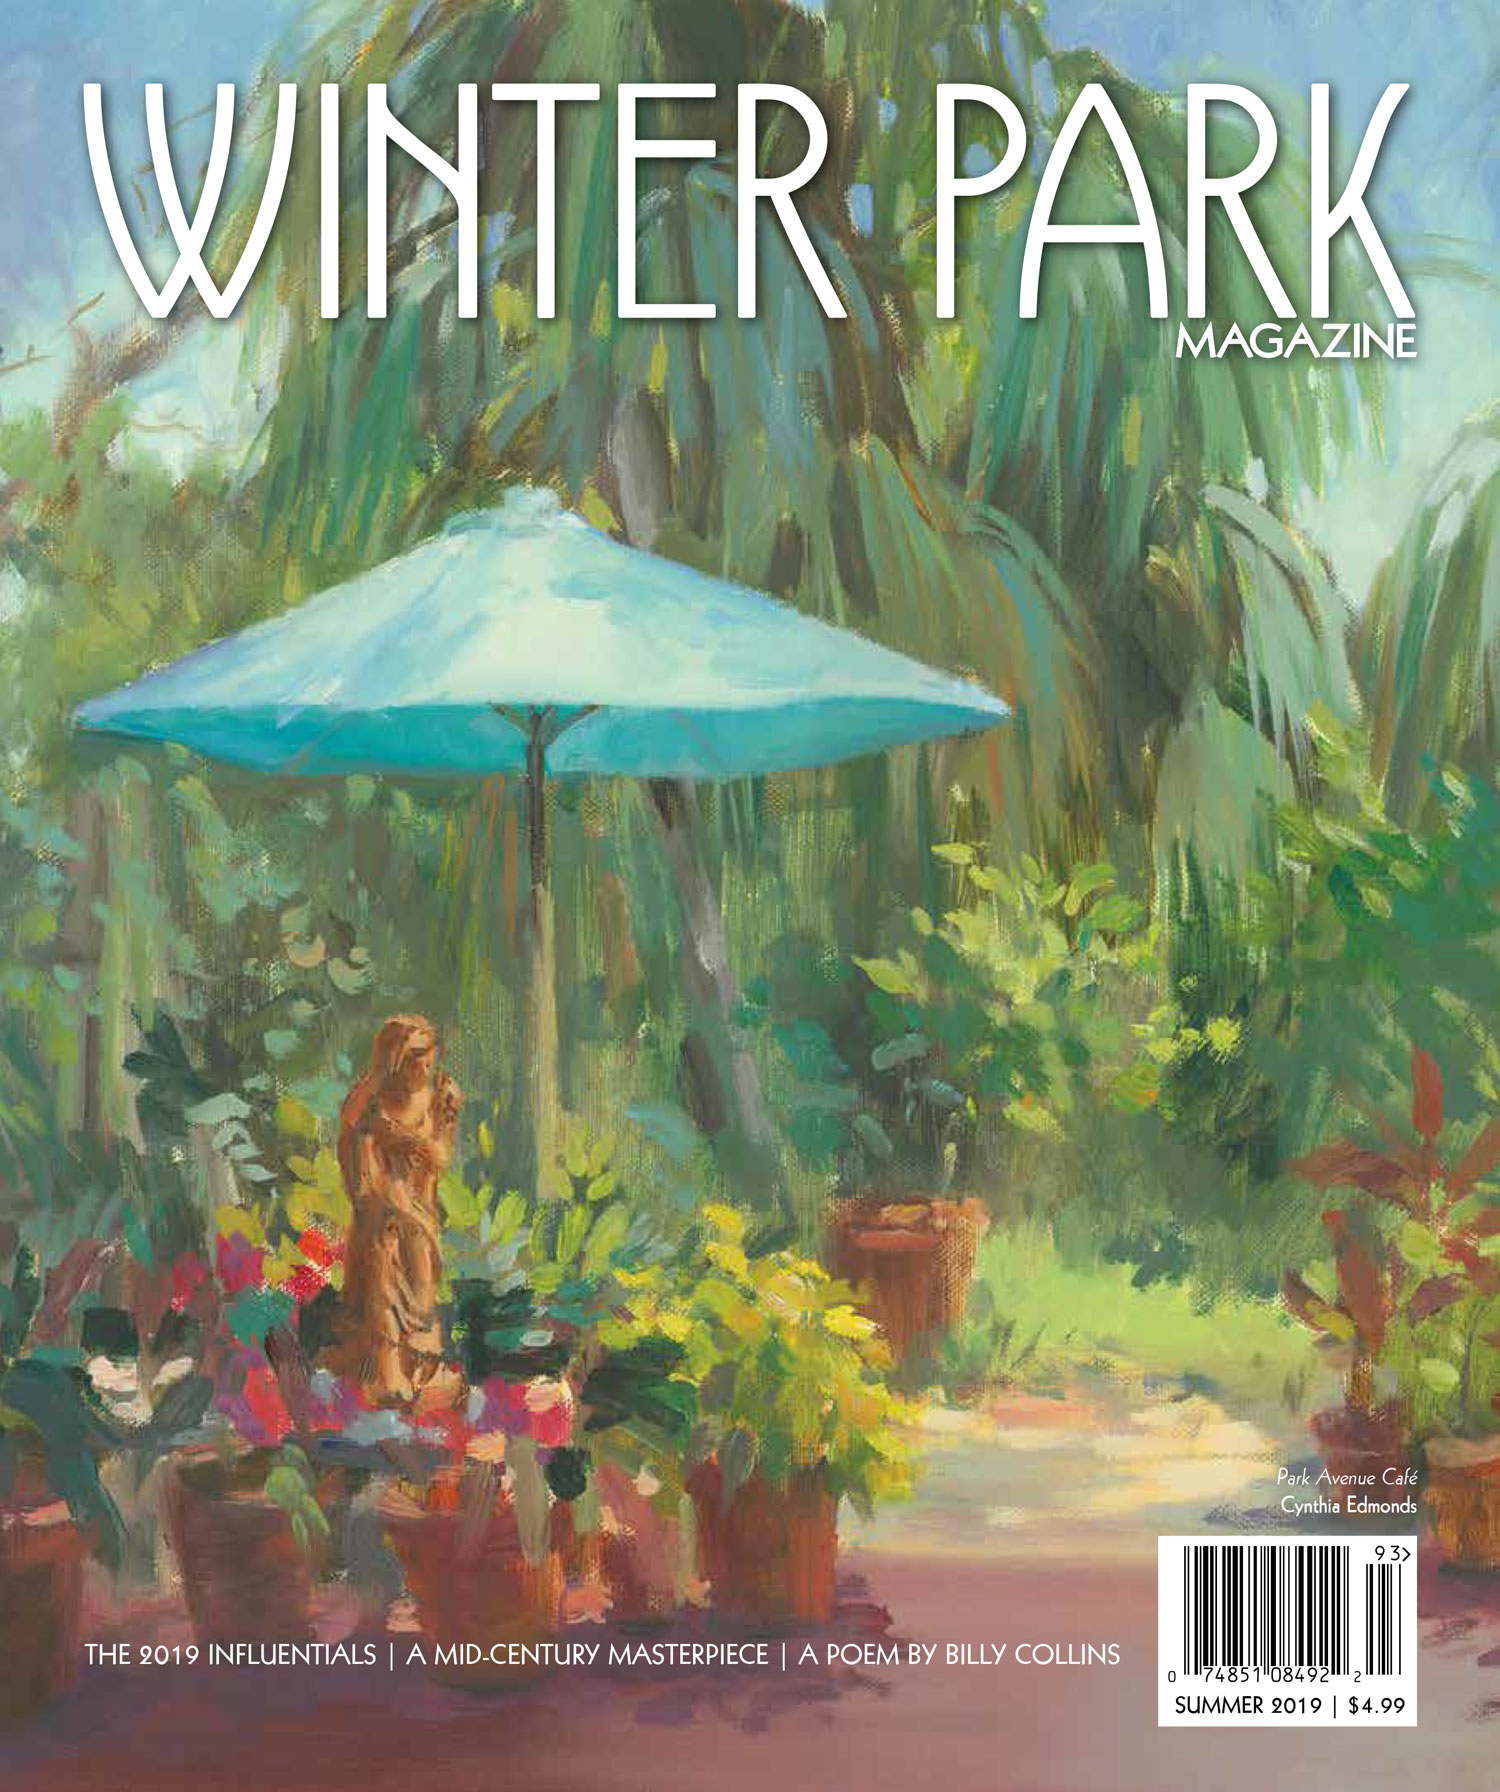 Affinity At Winter Park Home: Winter Park Magazine